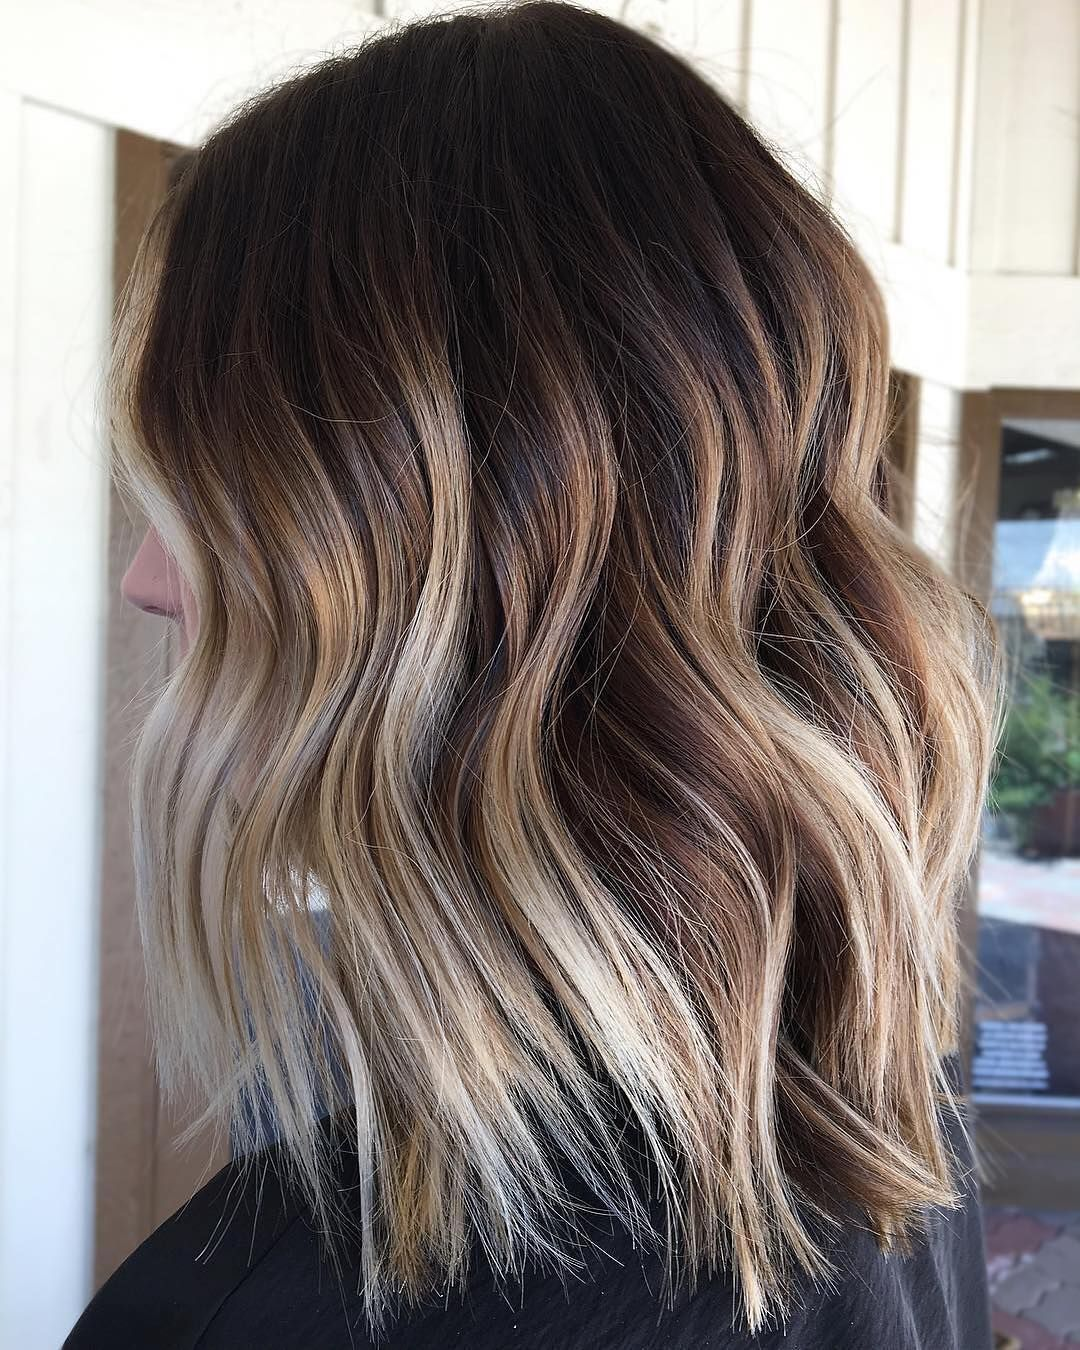 10 trendy brown balayage hairstyles for medium-length hair